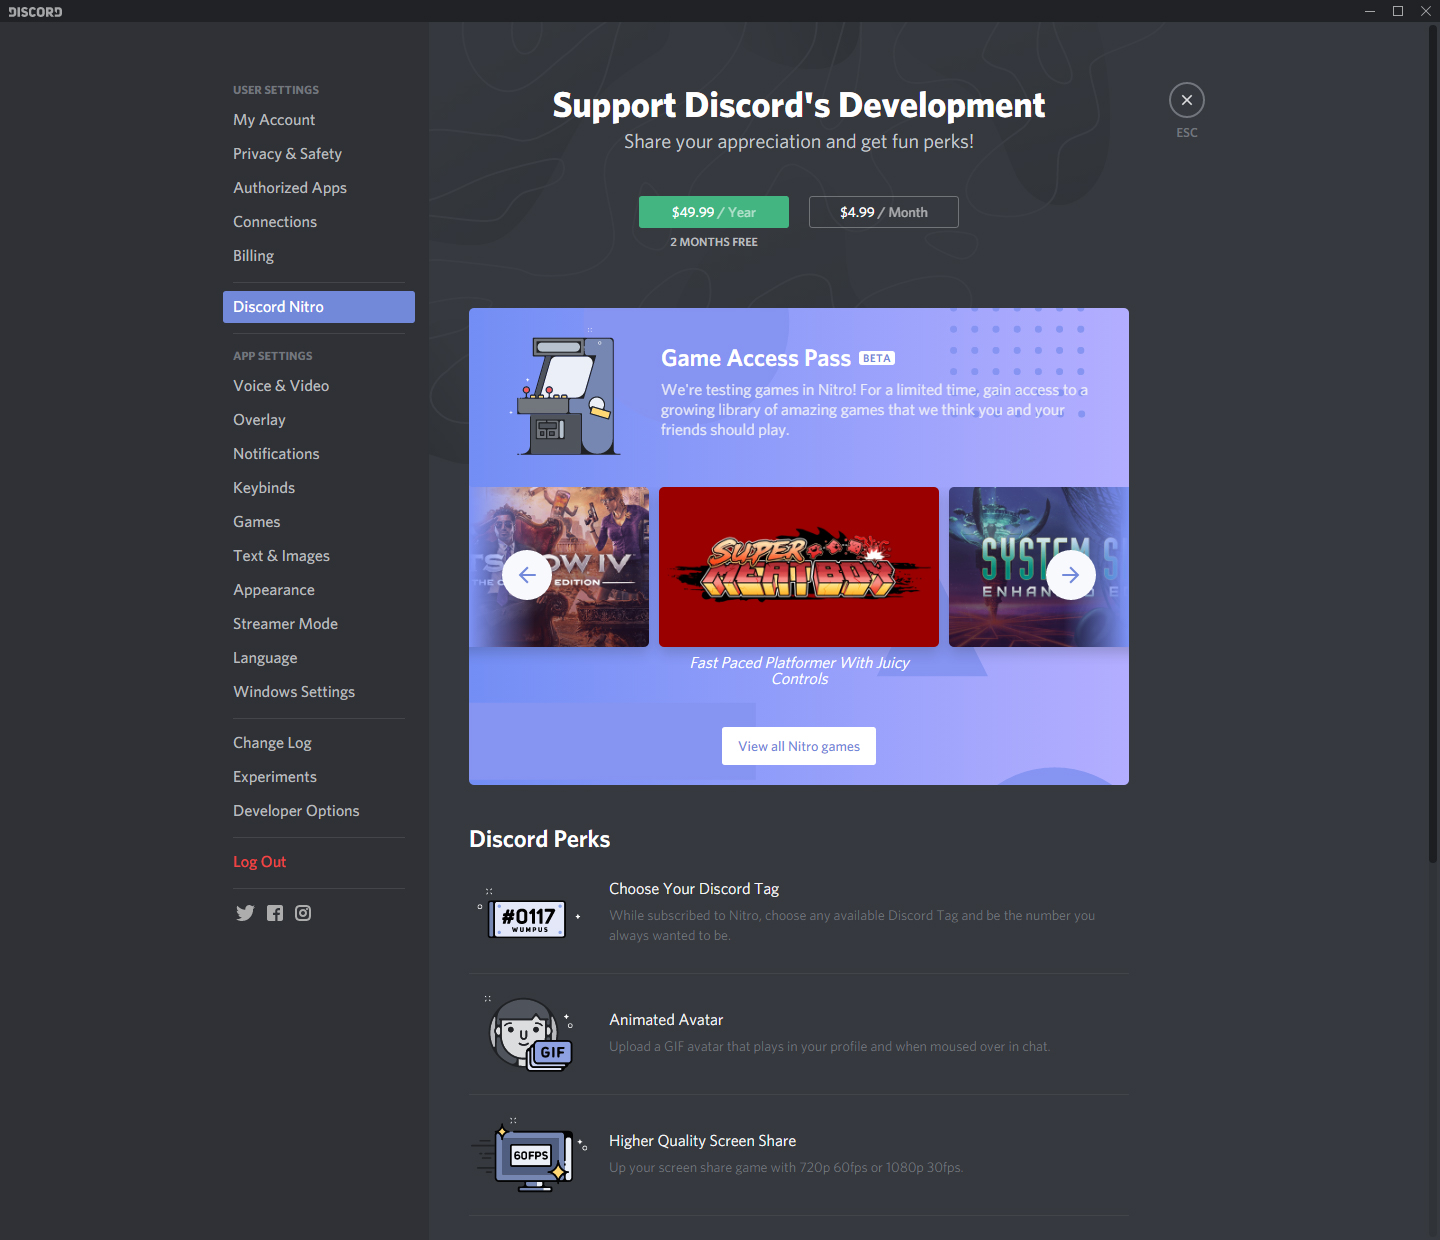 Discord launches storefront, now has 150m users